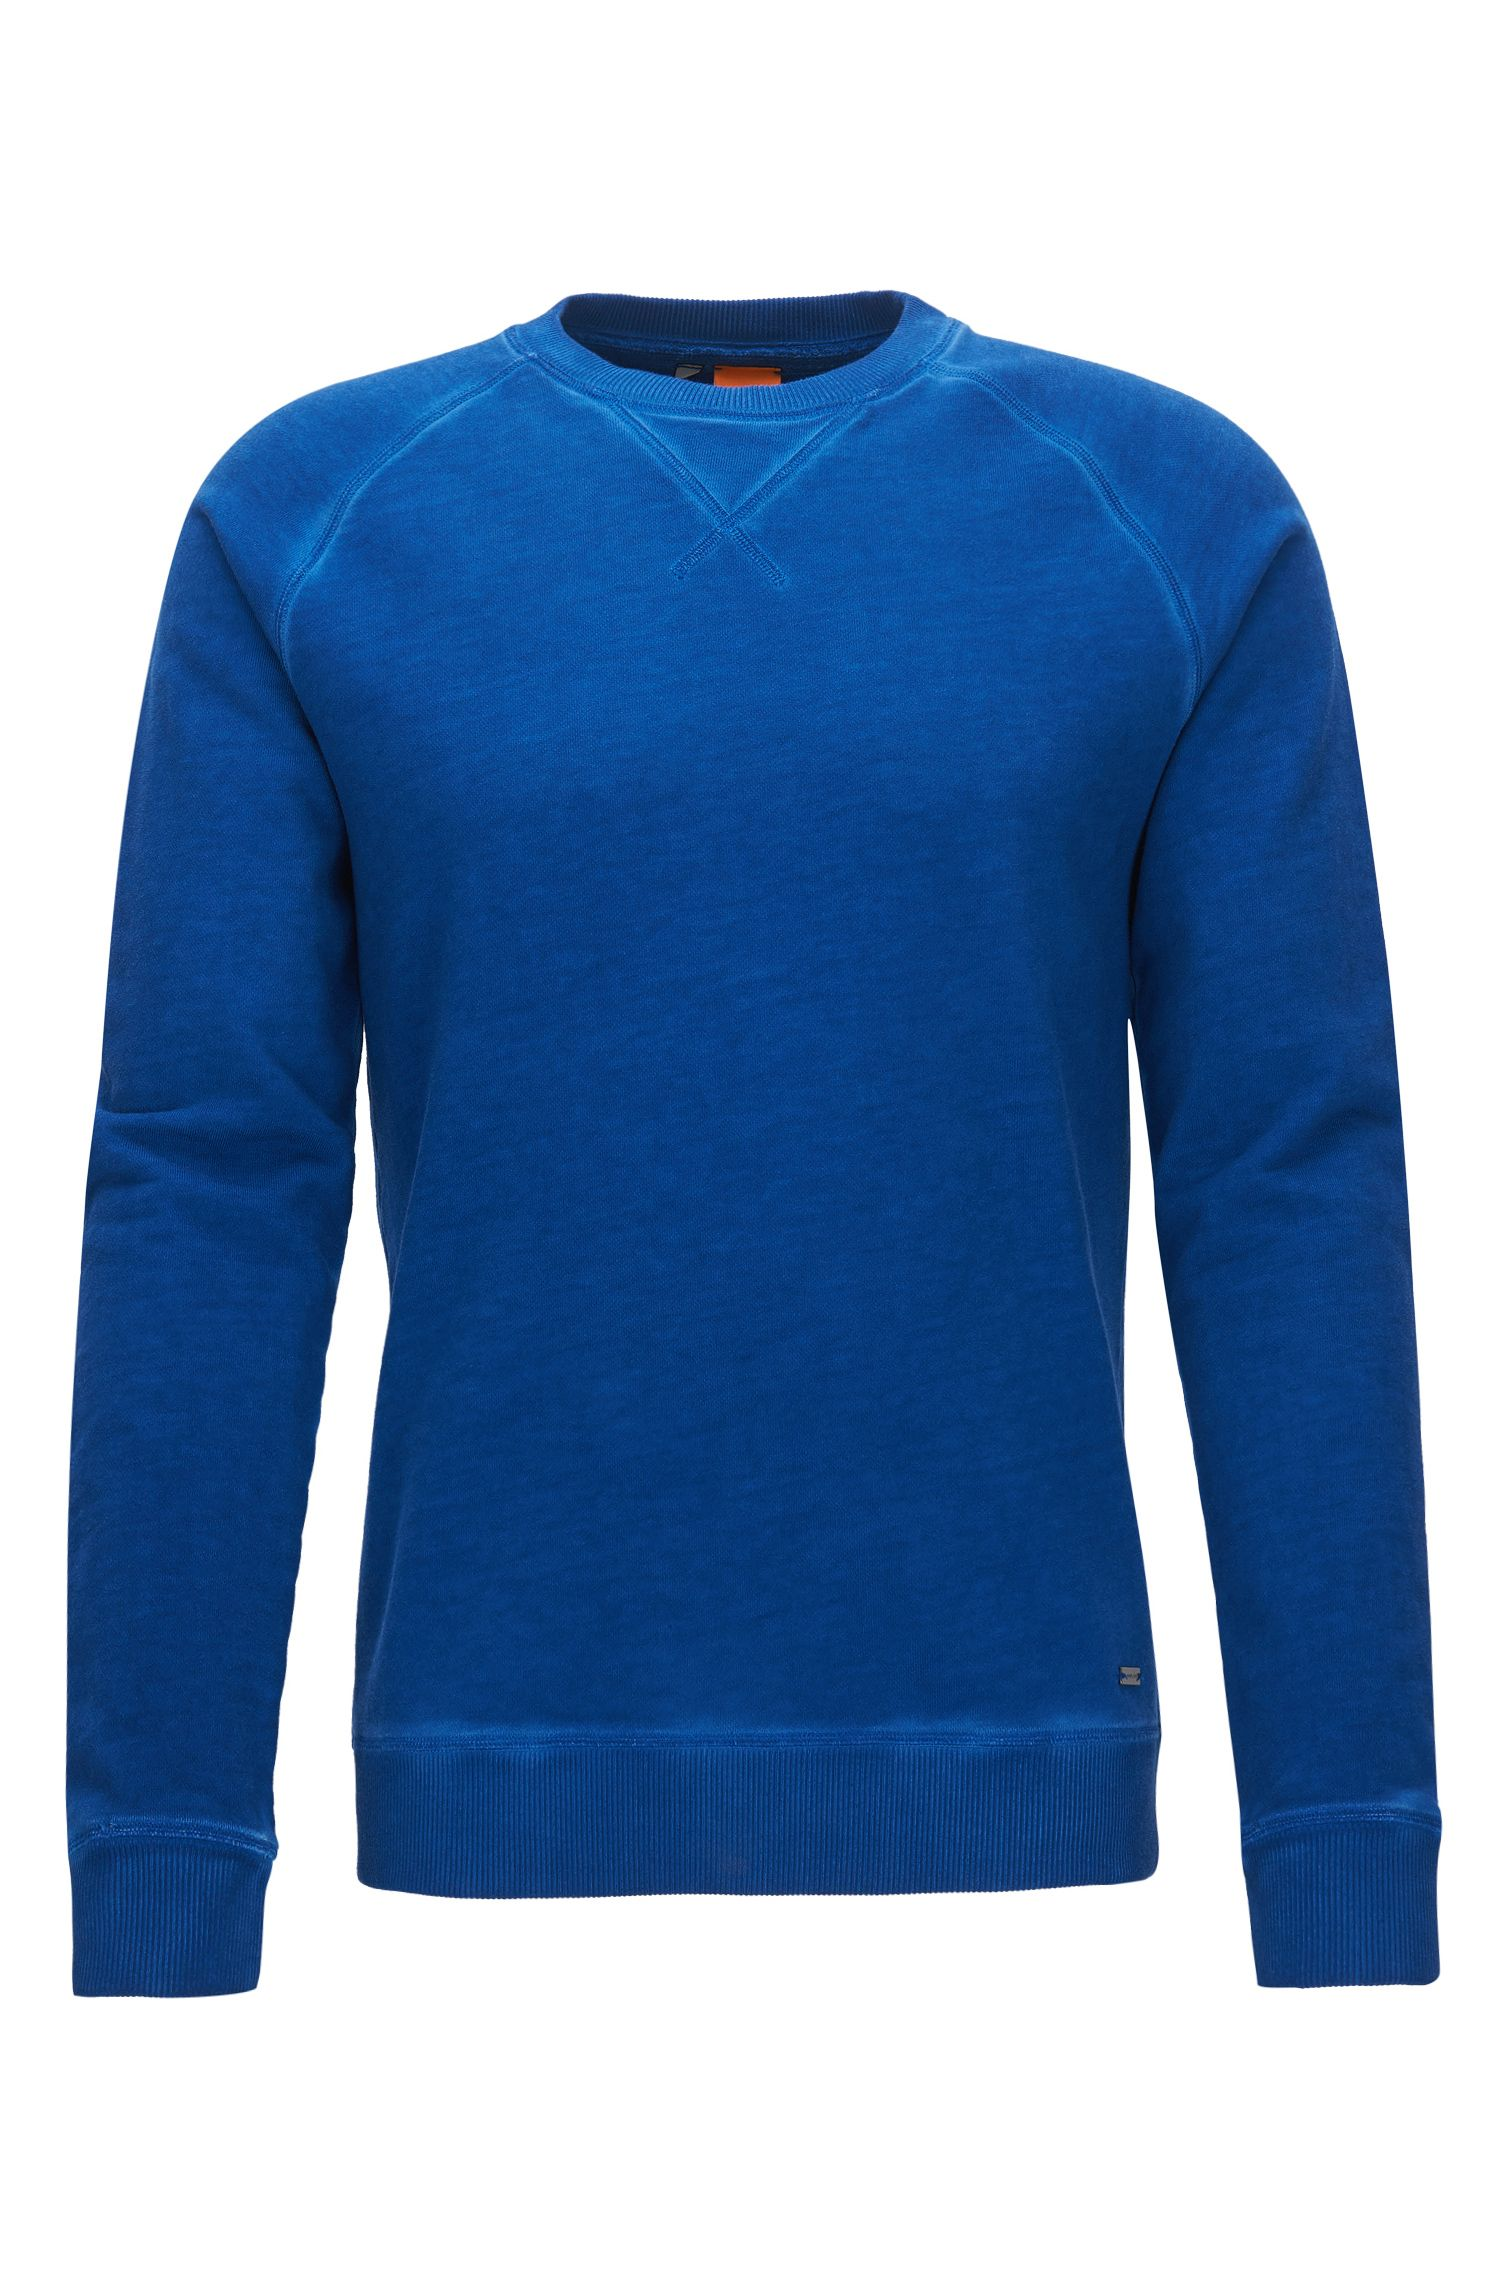 Garment-dyed sweater in midweight cotton